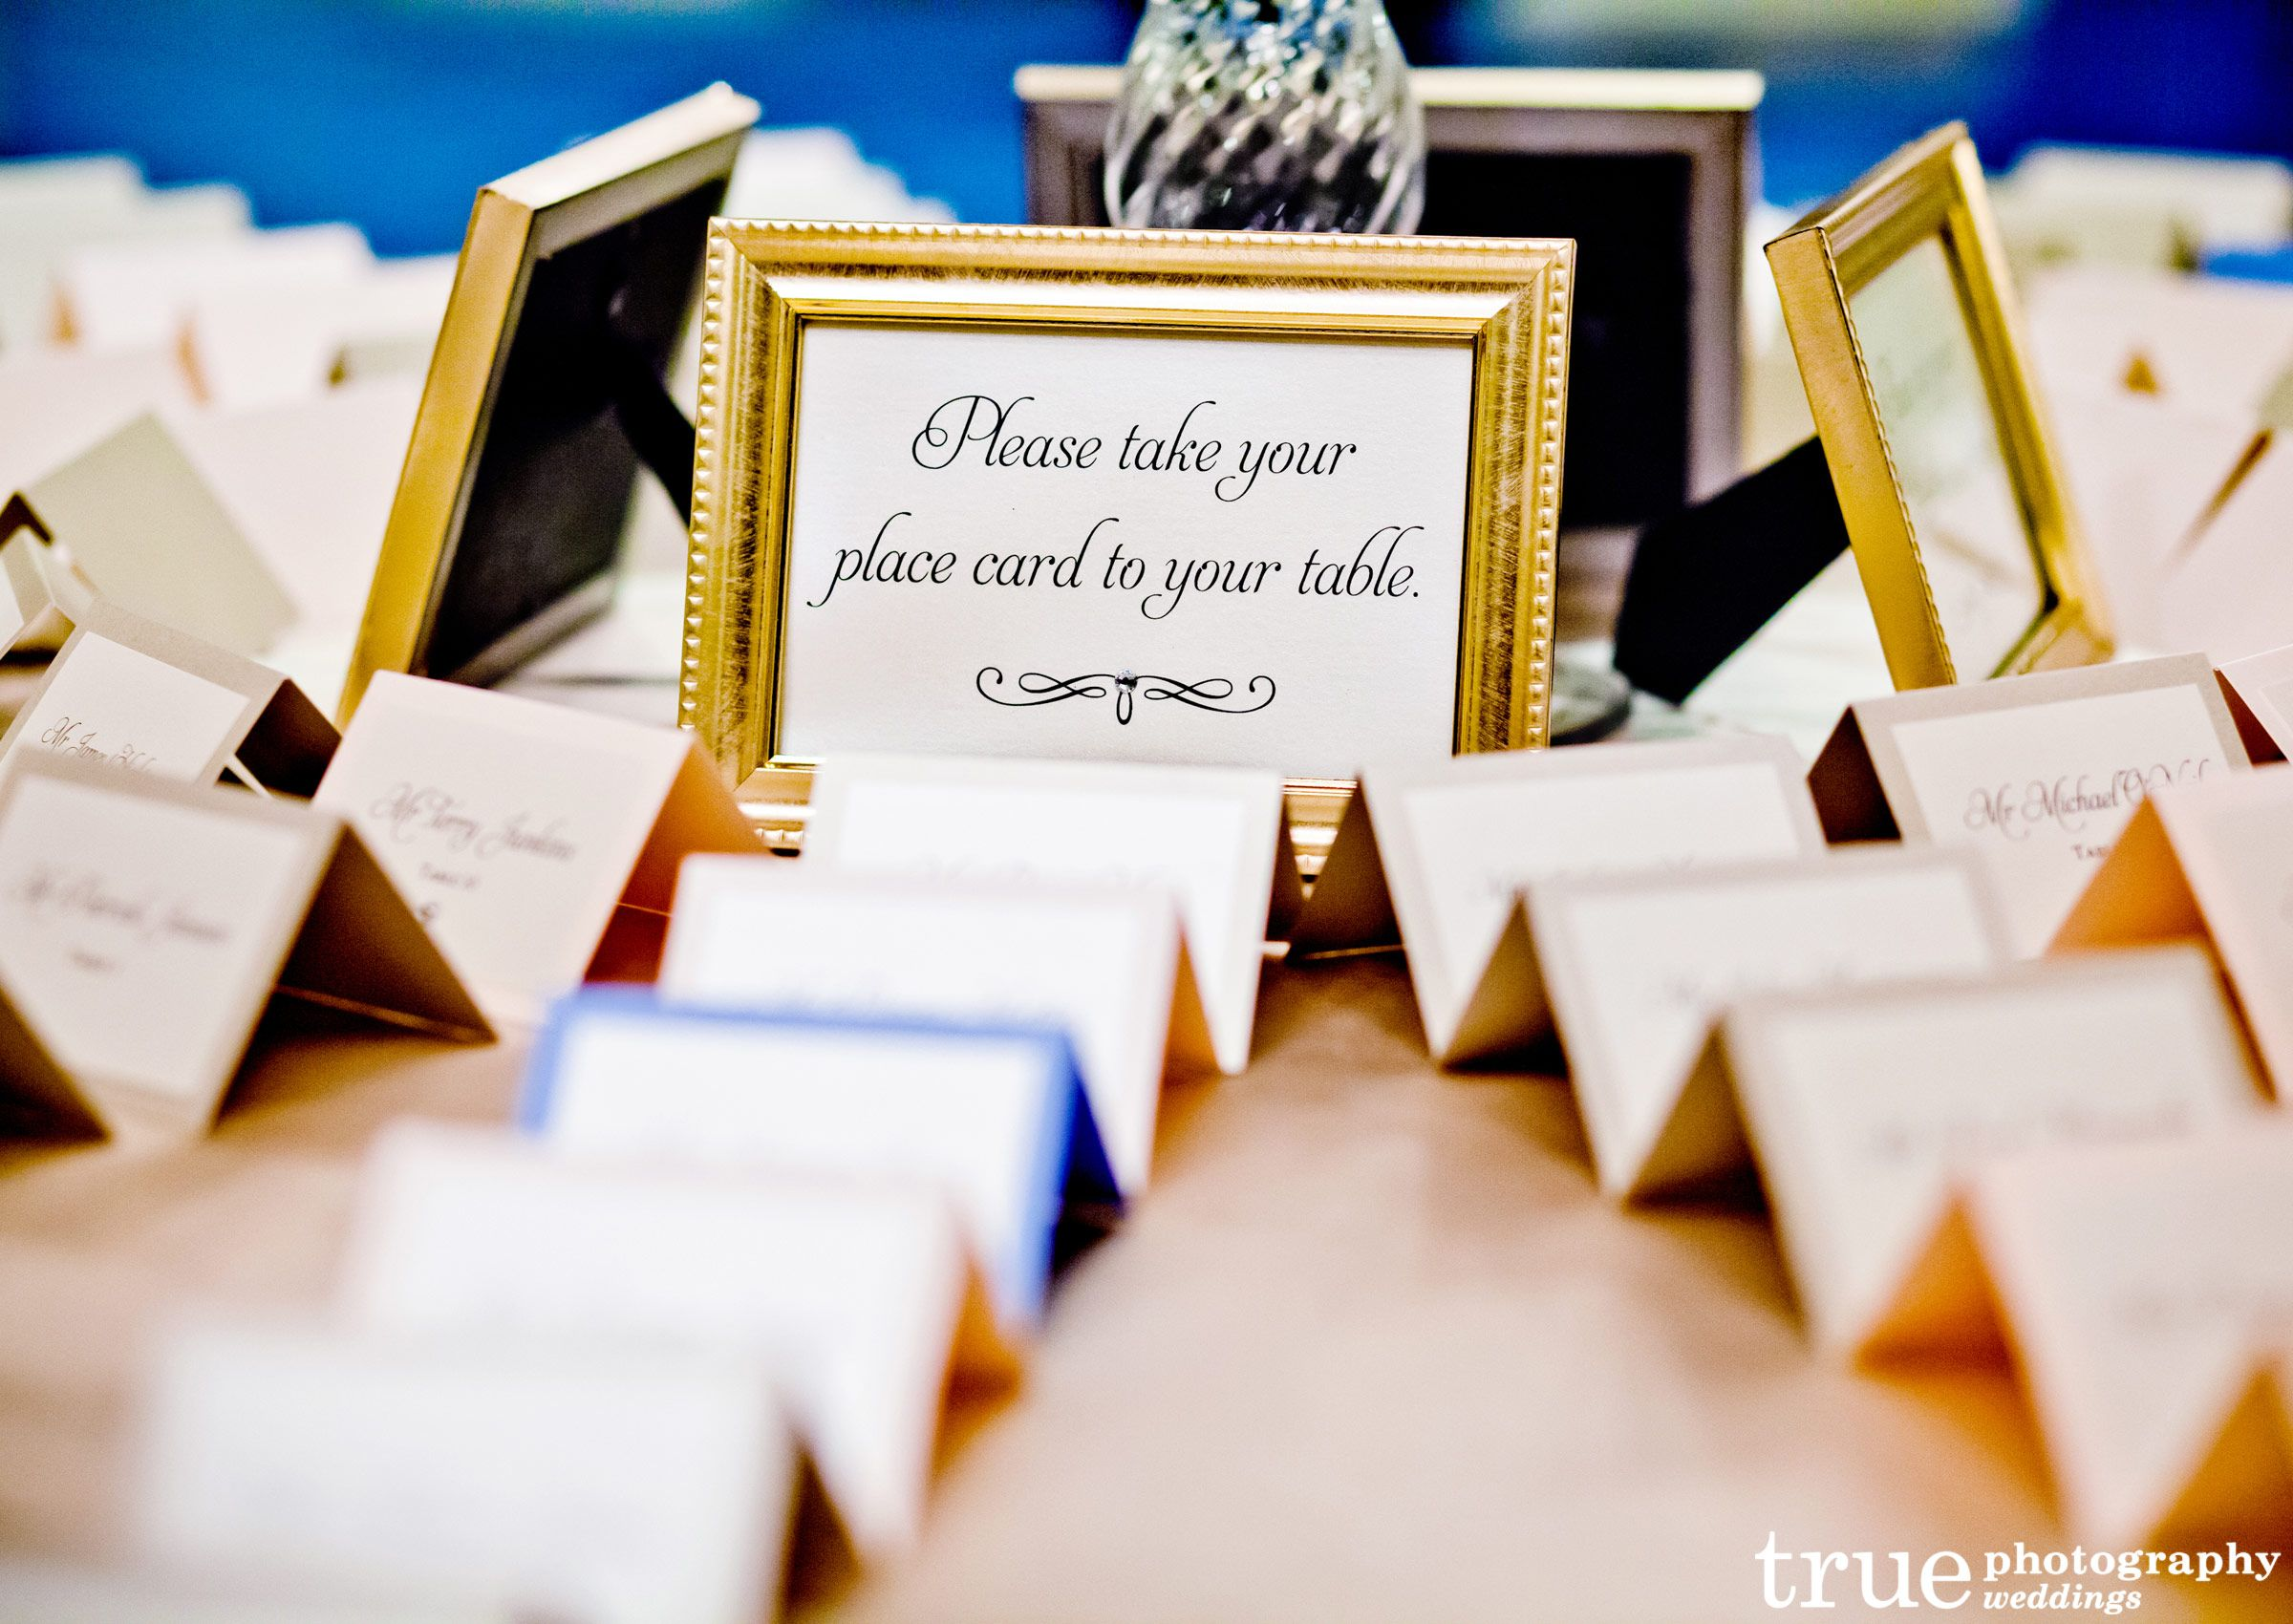 t creative wedding reception place card display ideas wedding